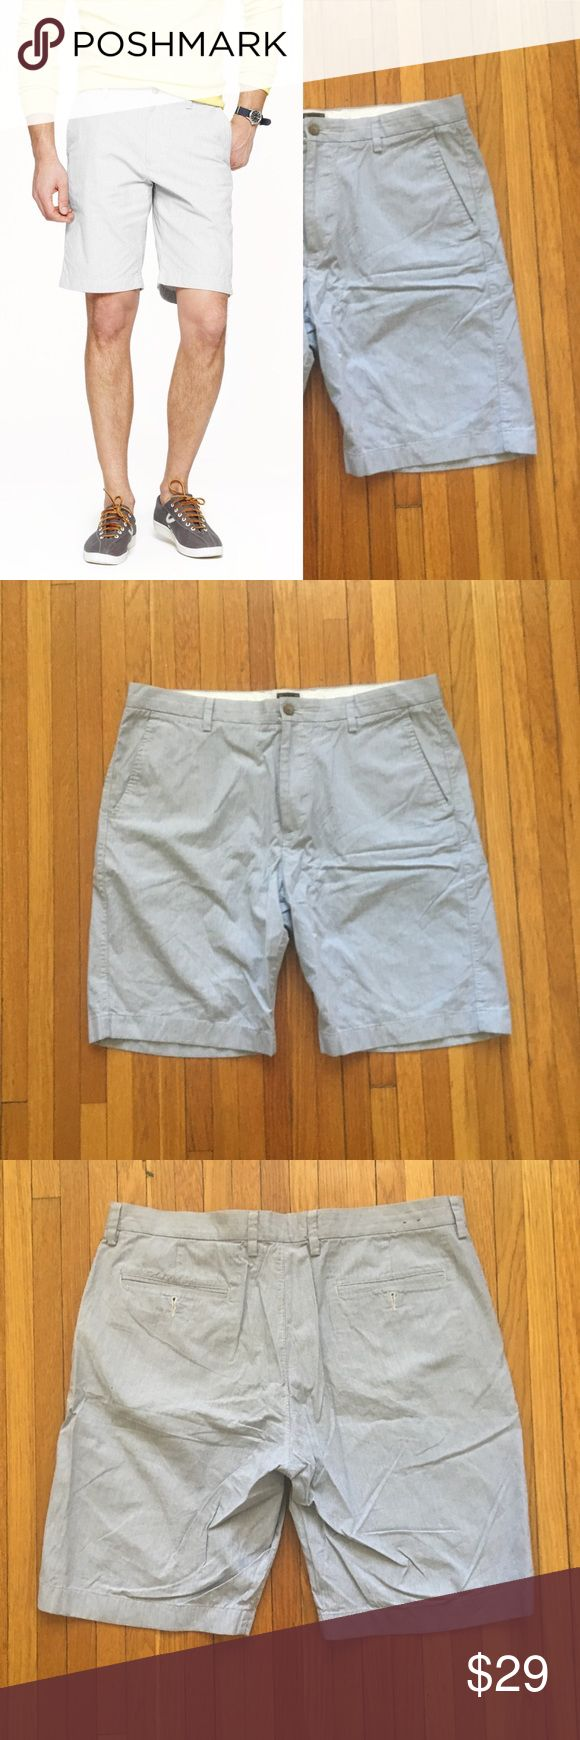 "J. Crew Club Microstripe Short J. Crew club short in microstripe, 36"" waist, in good condition. Sign of wear includes faint stain above back left pocket (pictured above). Classic pared-down silhouette in finely striped lightweight cotton. Narrower leg, a lower rise and a more refined cut. Classic fit. 100% Cotton. 11"" inseam. Item 9387. No trades. Feel free to make a respectable offer. Thank you for looking! J. Crew Shorts Flat Front"